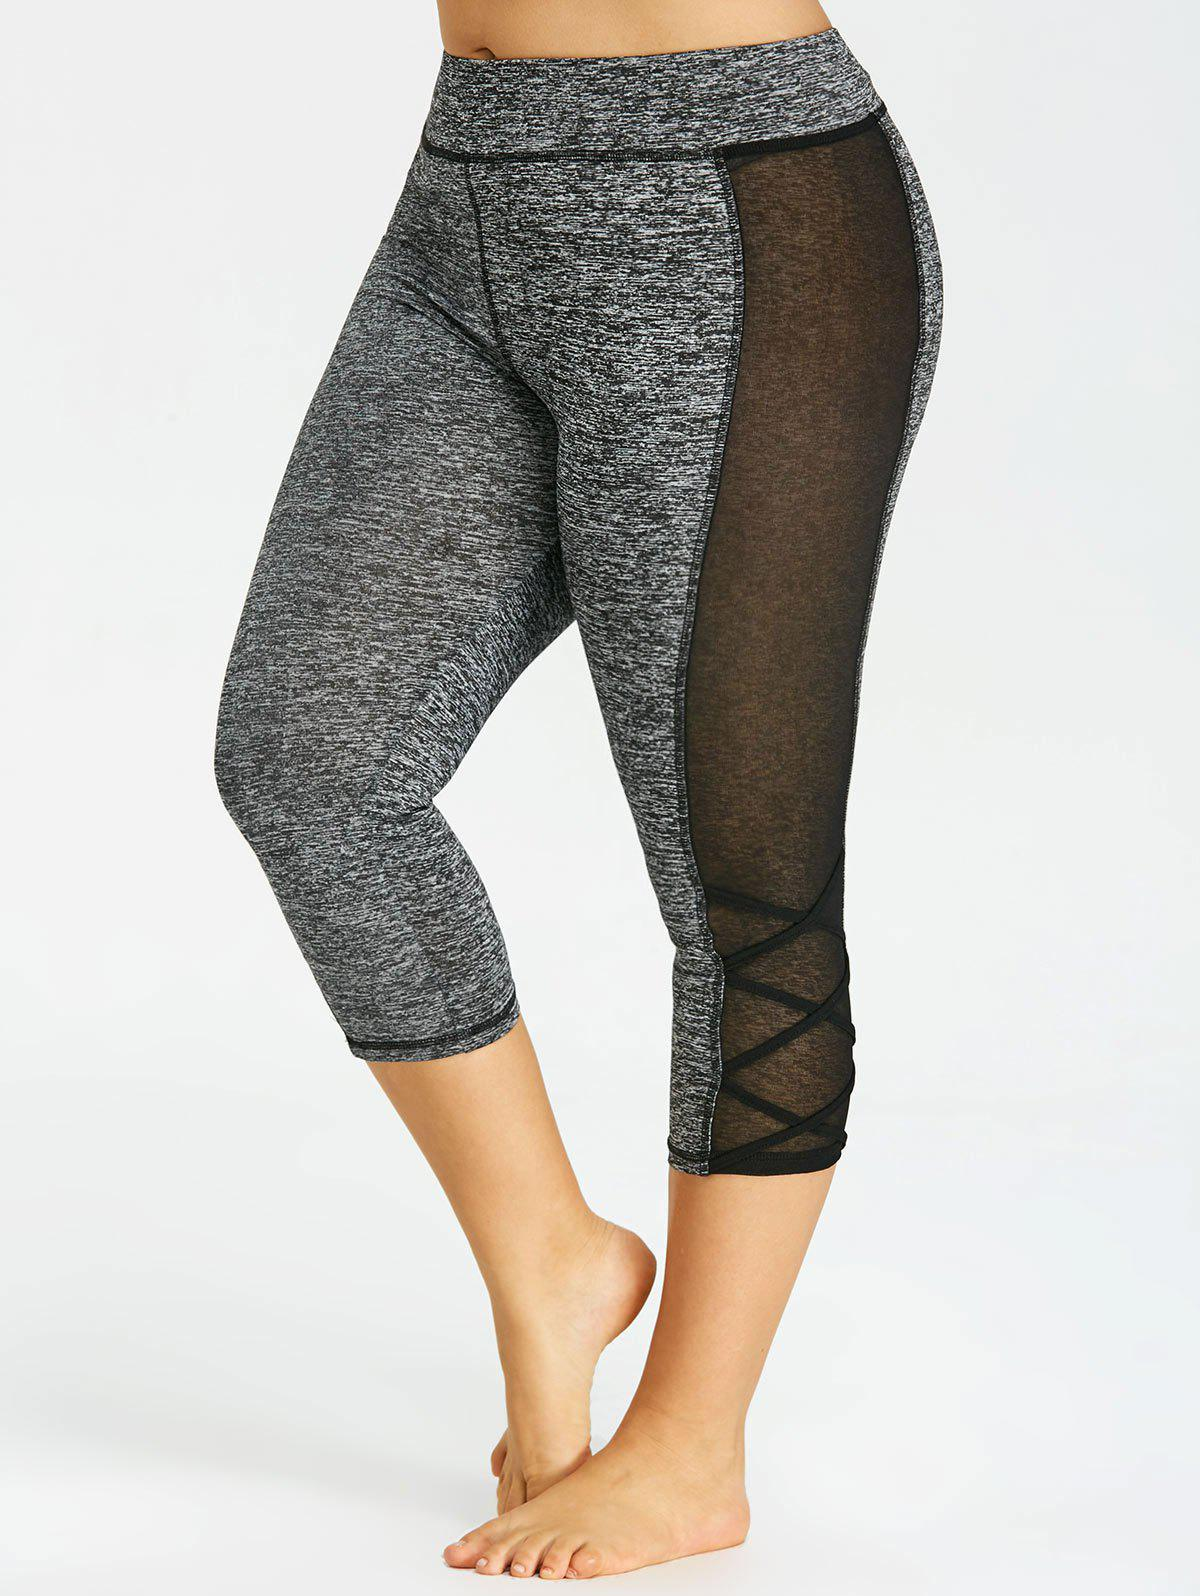 Plus Size Marled Capri Leggings - DARK HEATHER GRAY 4XL